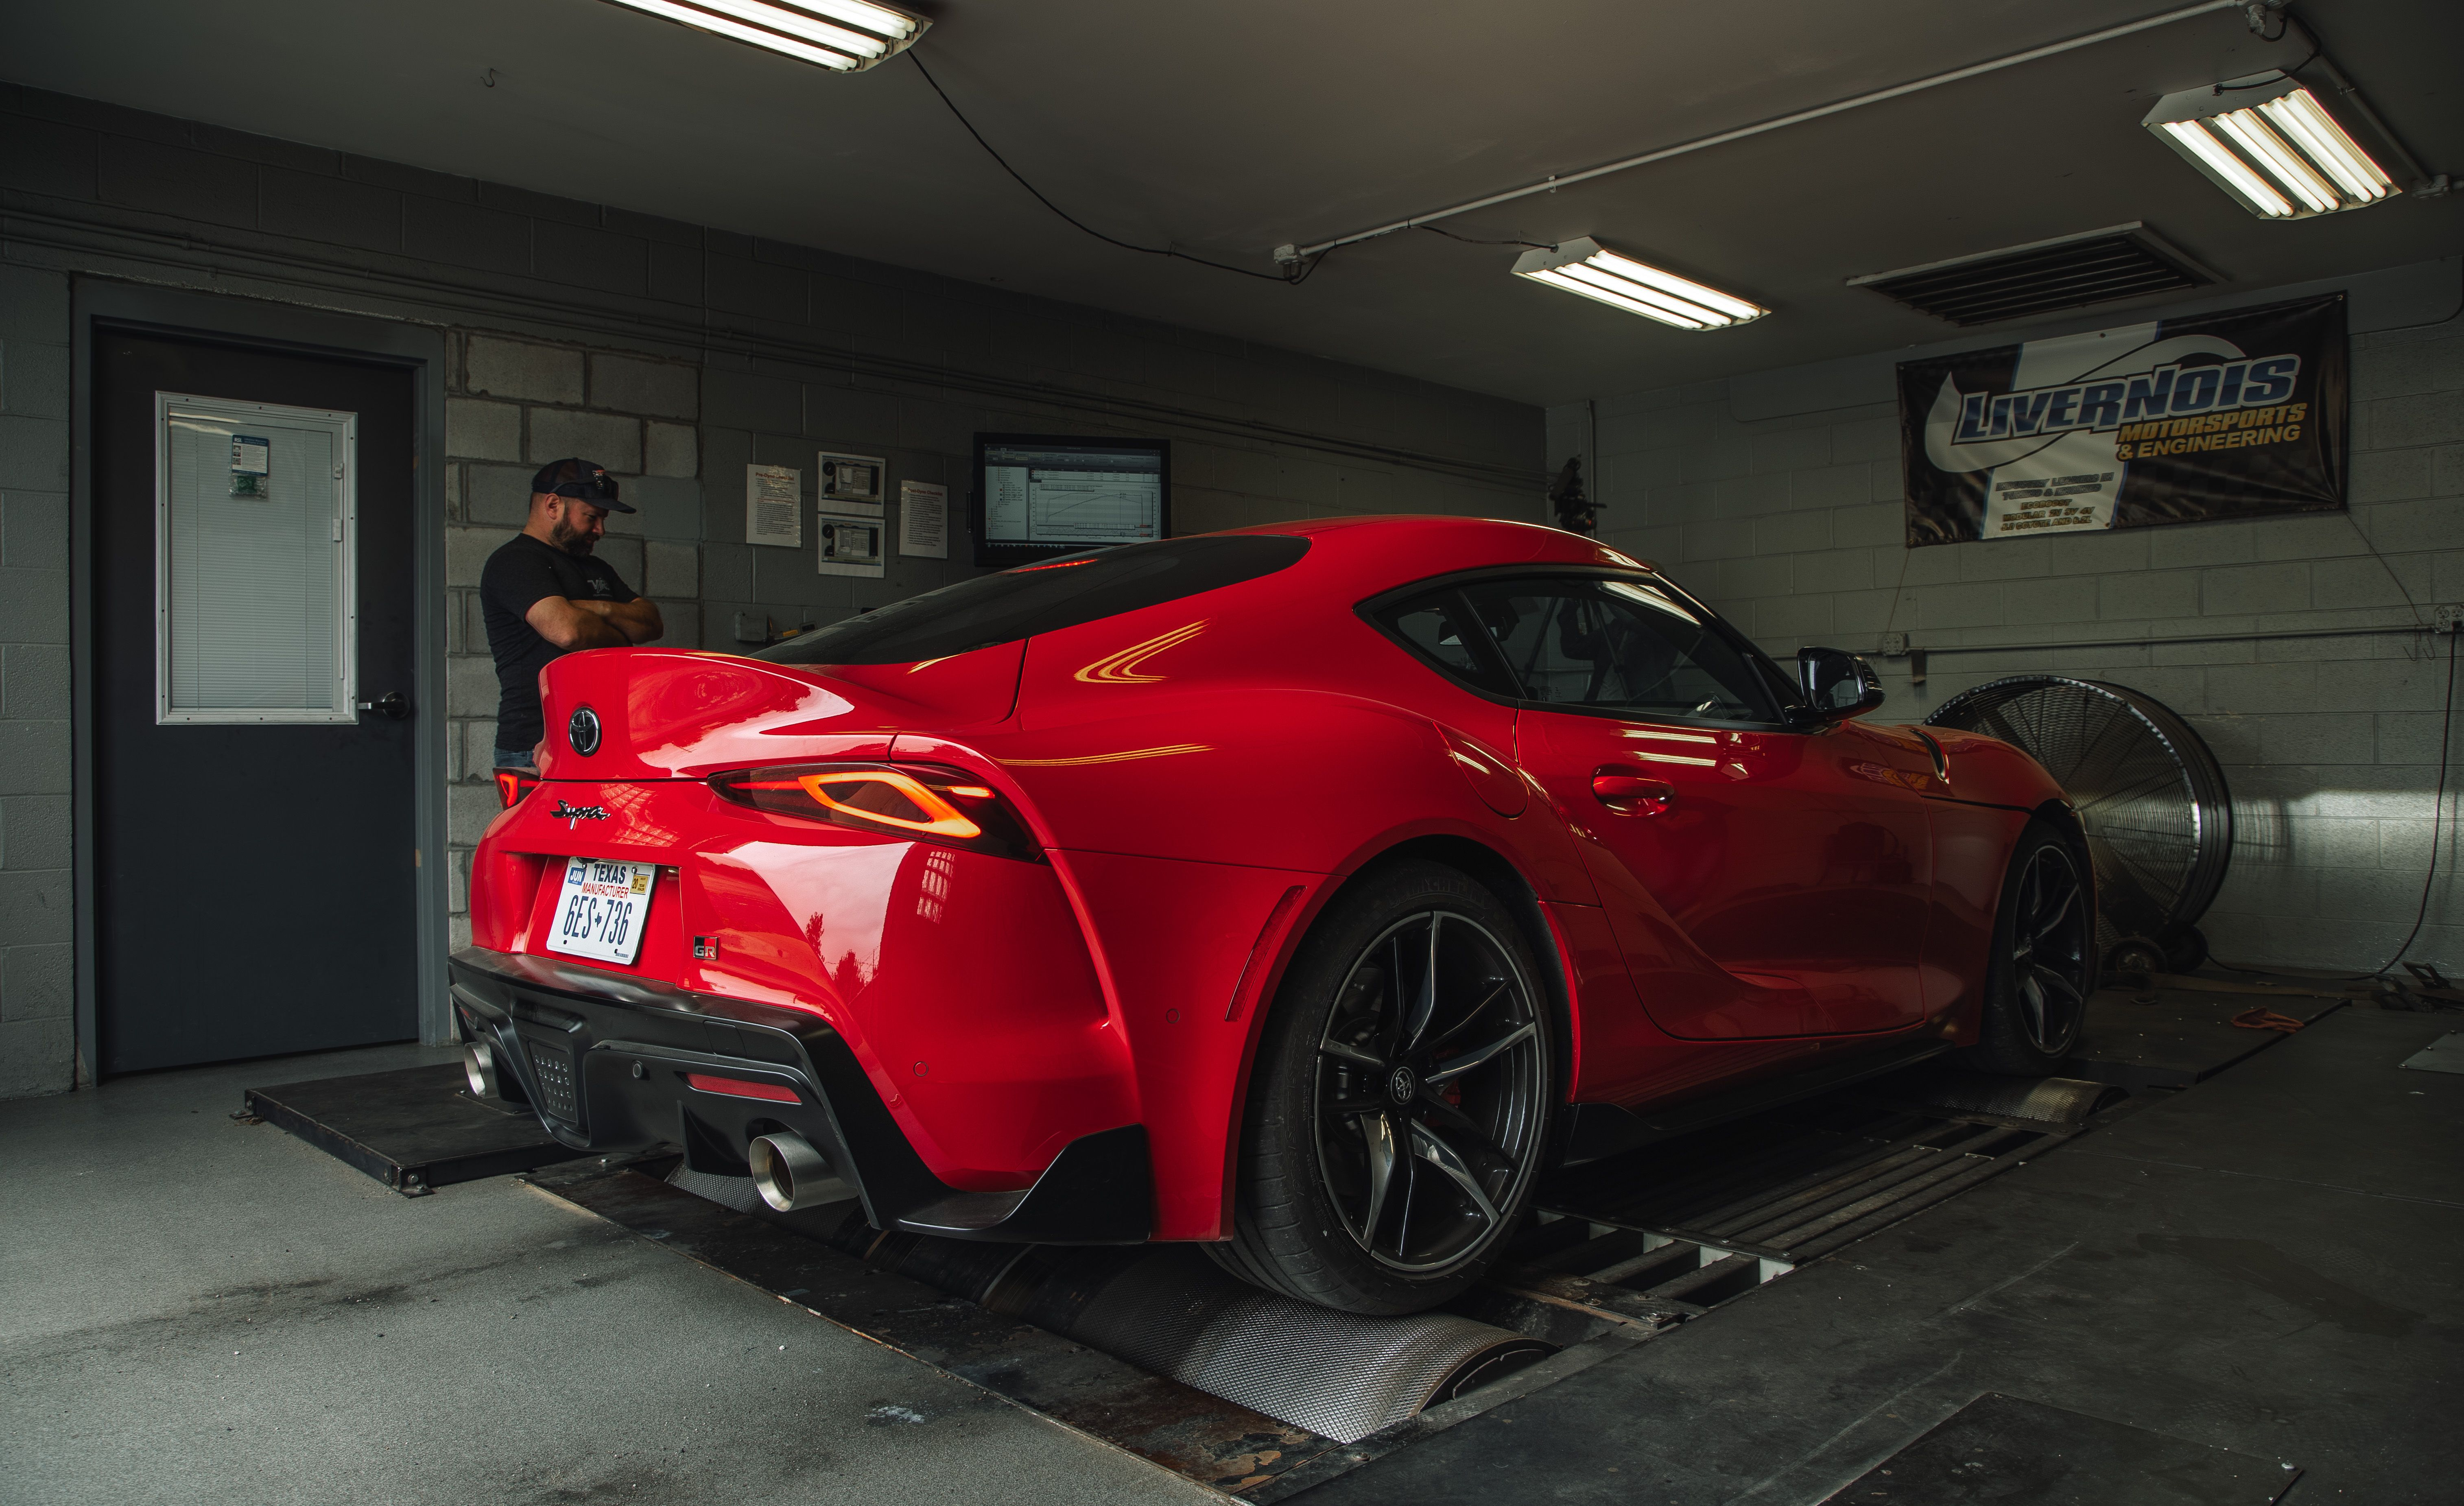 Comments on: The 2020 Toyota Supra Makes More Power Than